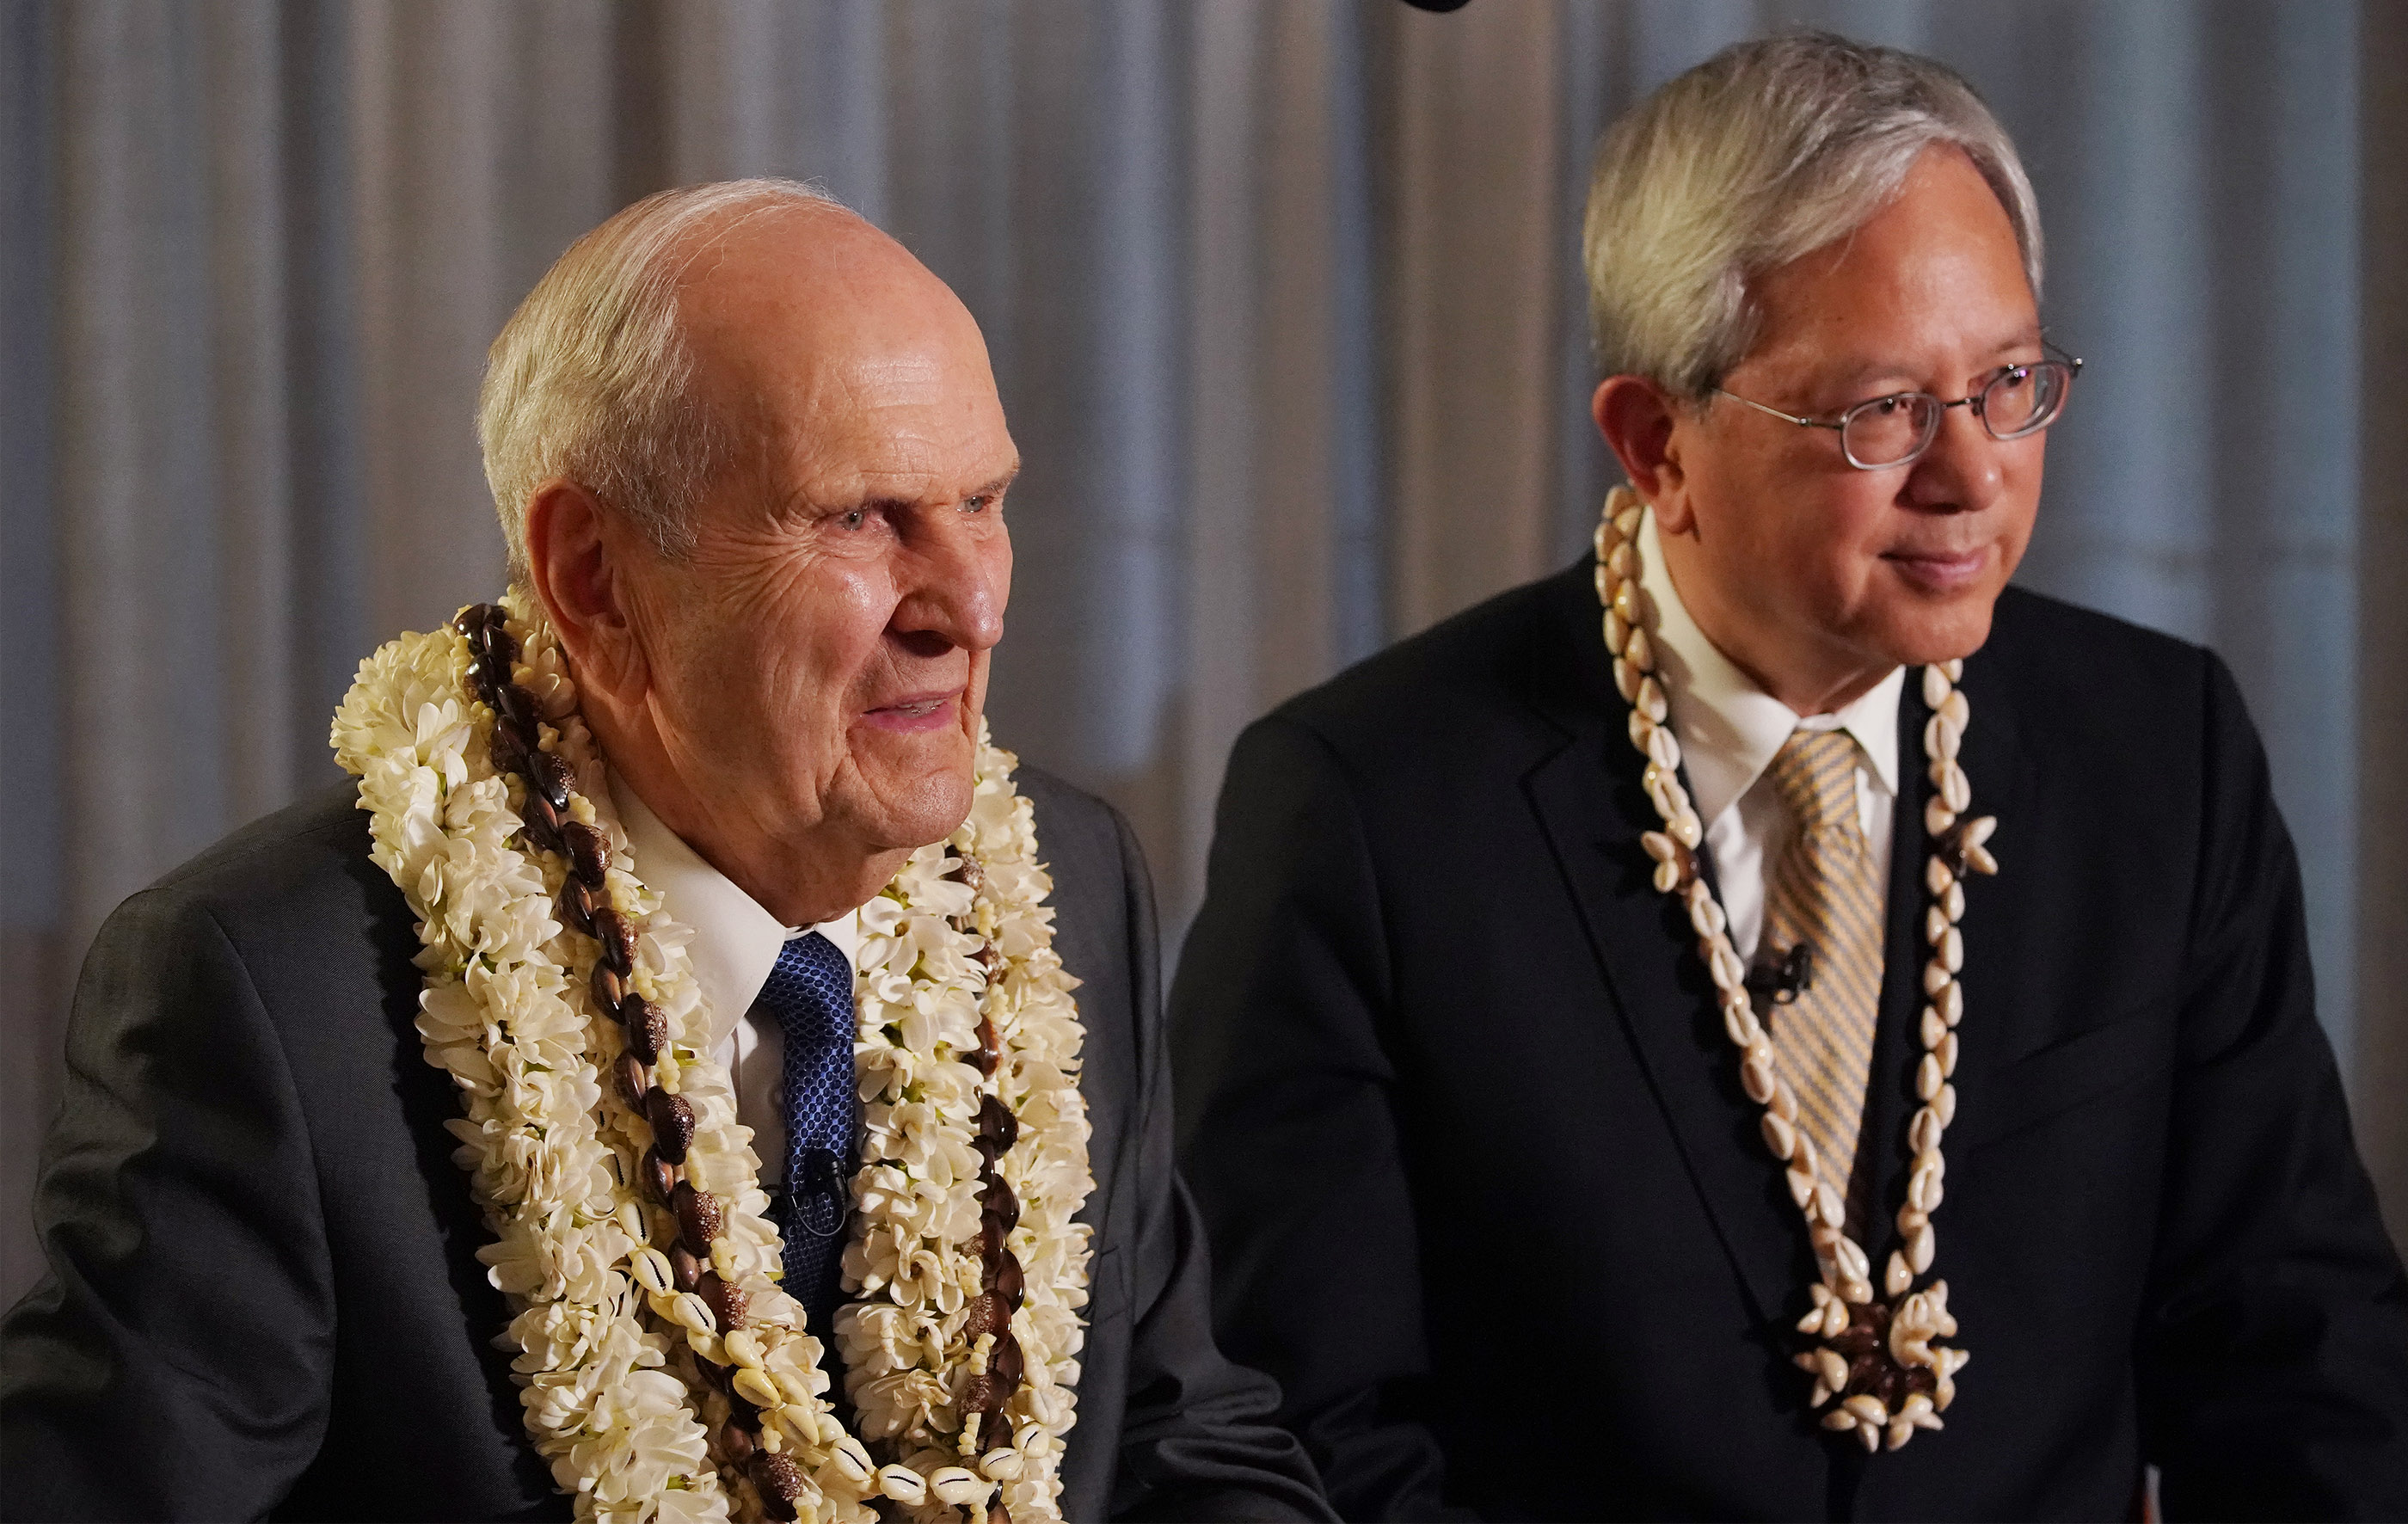 President Russell M. Nelson of The Church of Jesus Christ of Latter-day Saints and Elder Gerrit W. Gong of the Quorum of the Twelve Apostles are interviewed by media in Papeete, Tahiti, on May 24, 2019.